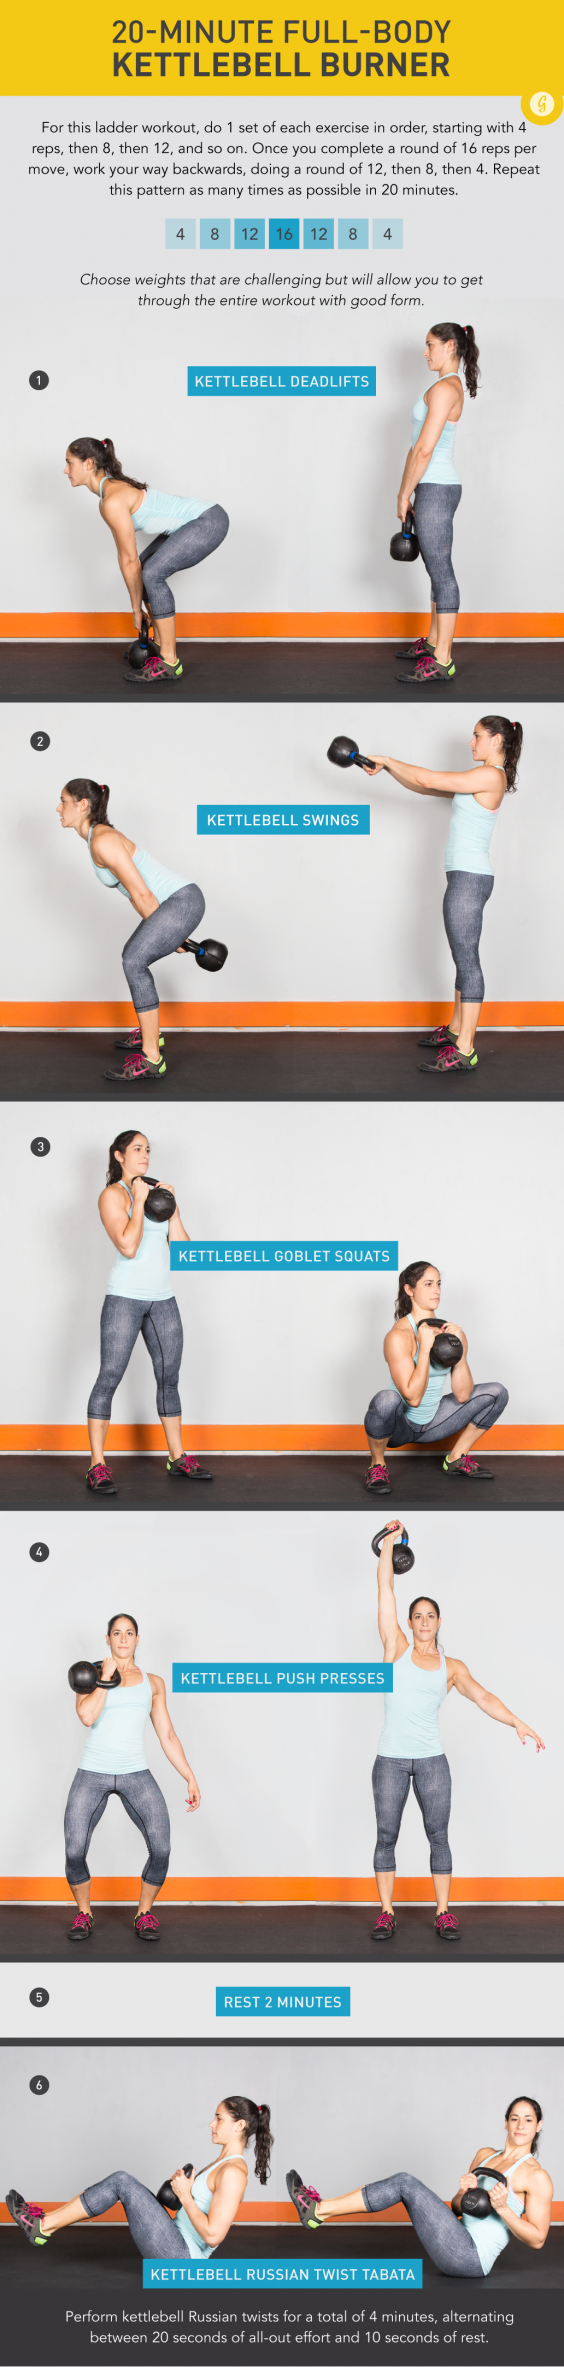 20 Minute Full Body Kettlebell Burner